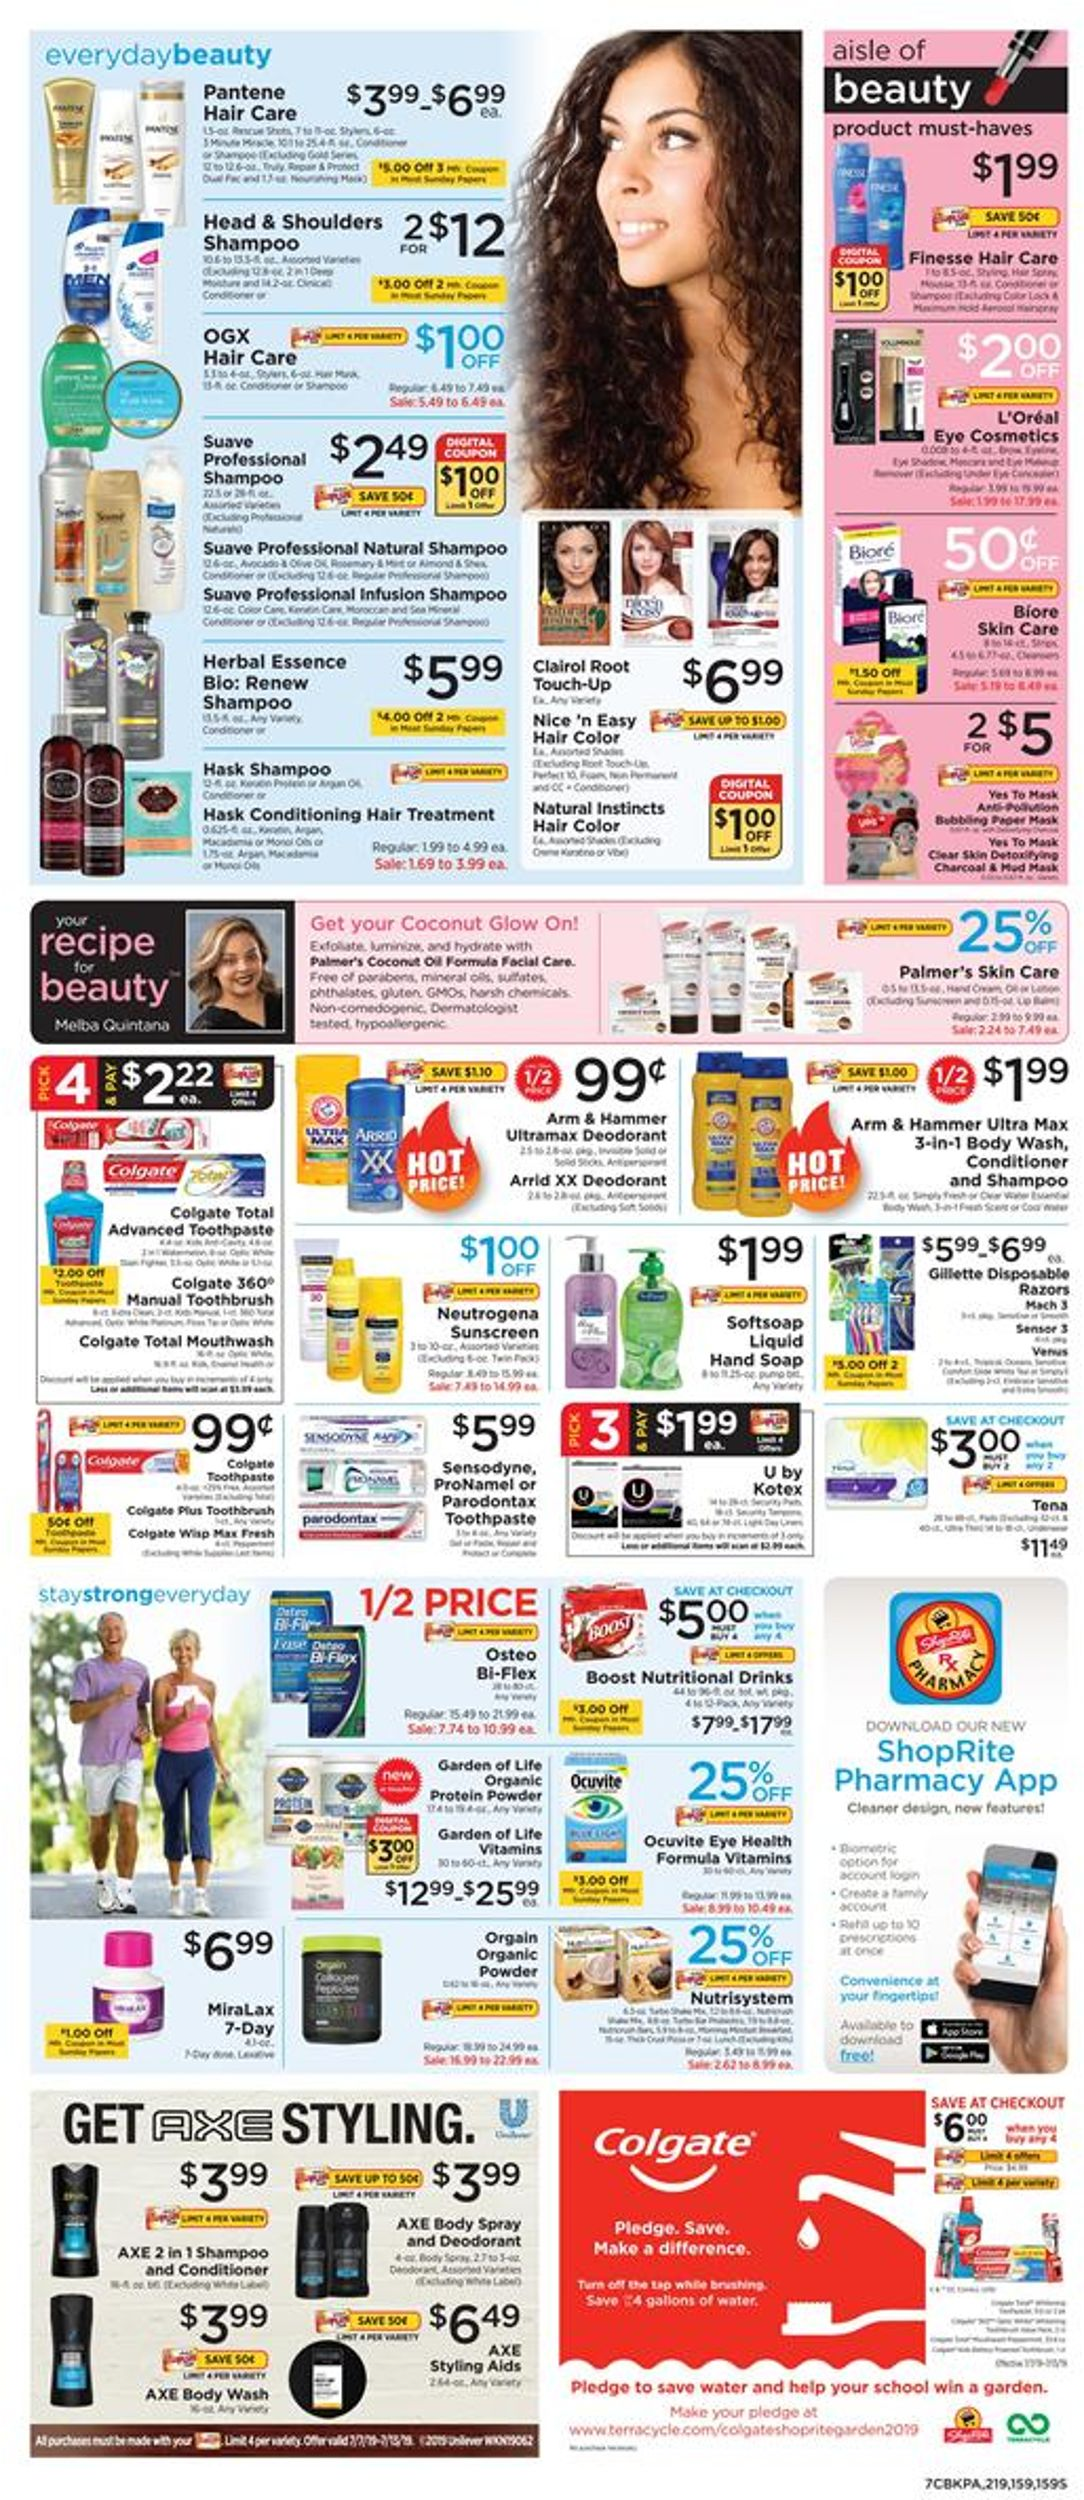 ShopRite Current weekly ad 07/07 - 07/13/2019 [7] - weekly-ad-24.com